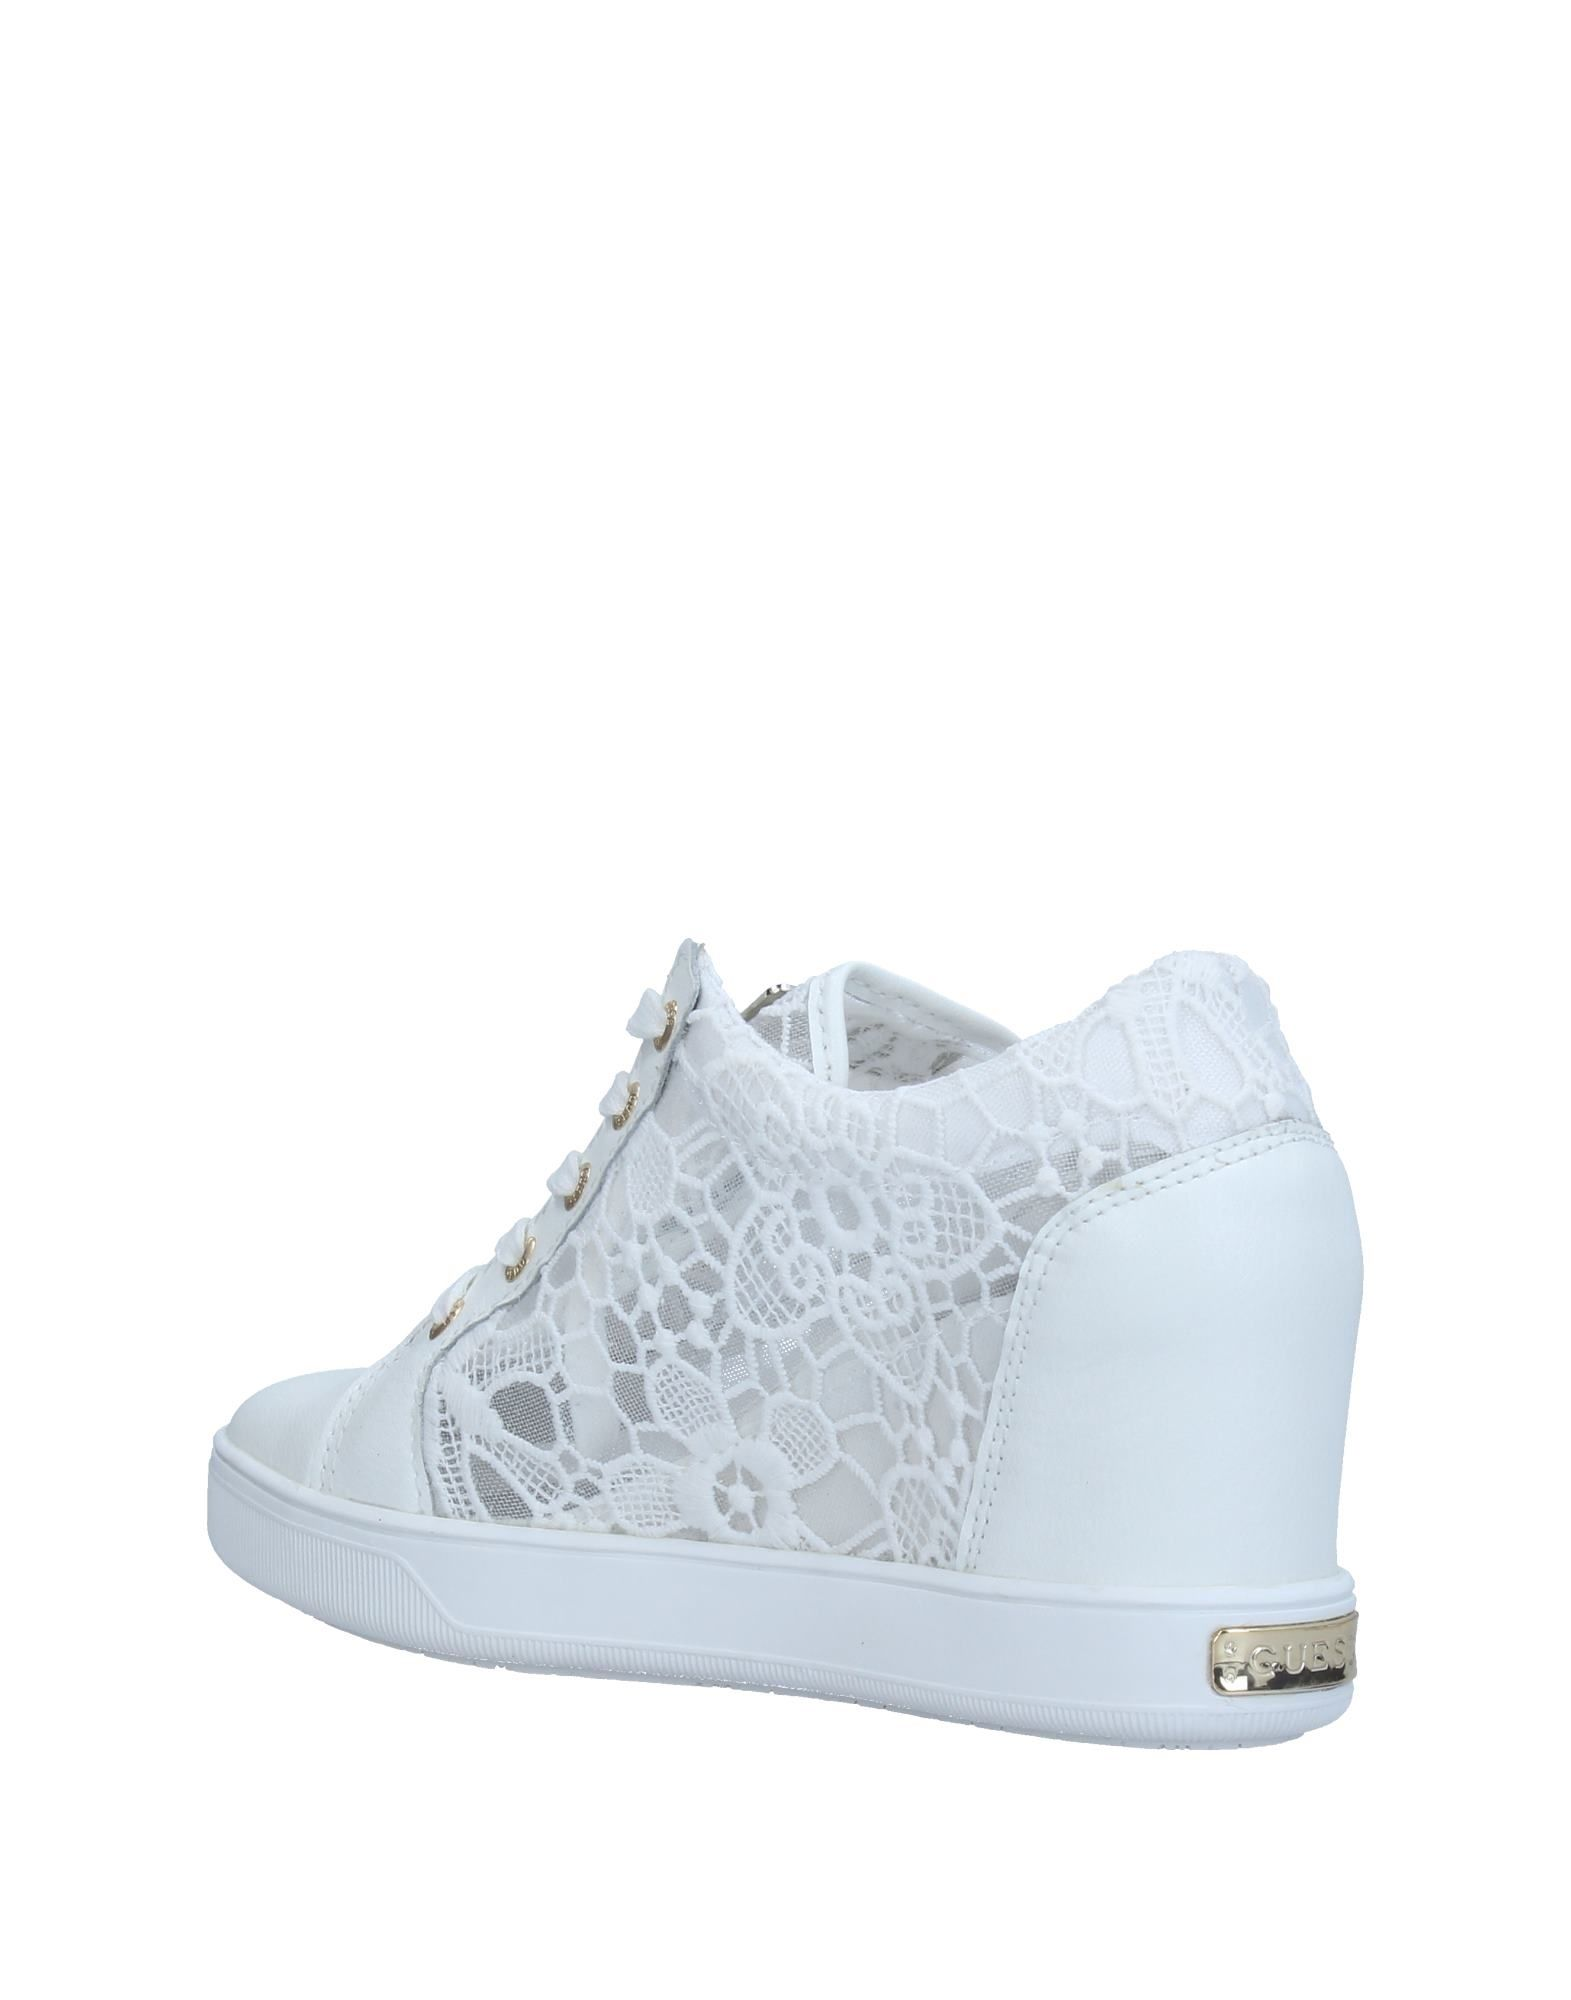 Moda Sneakers Guess Guess Guess Donna - 11329655TK 80a926